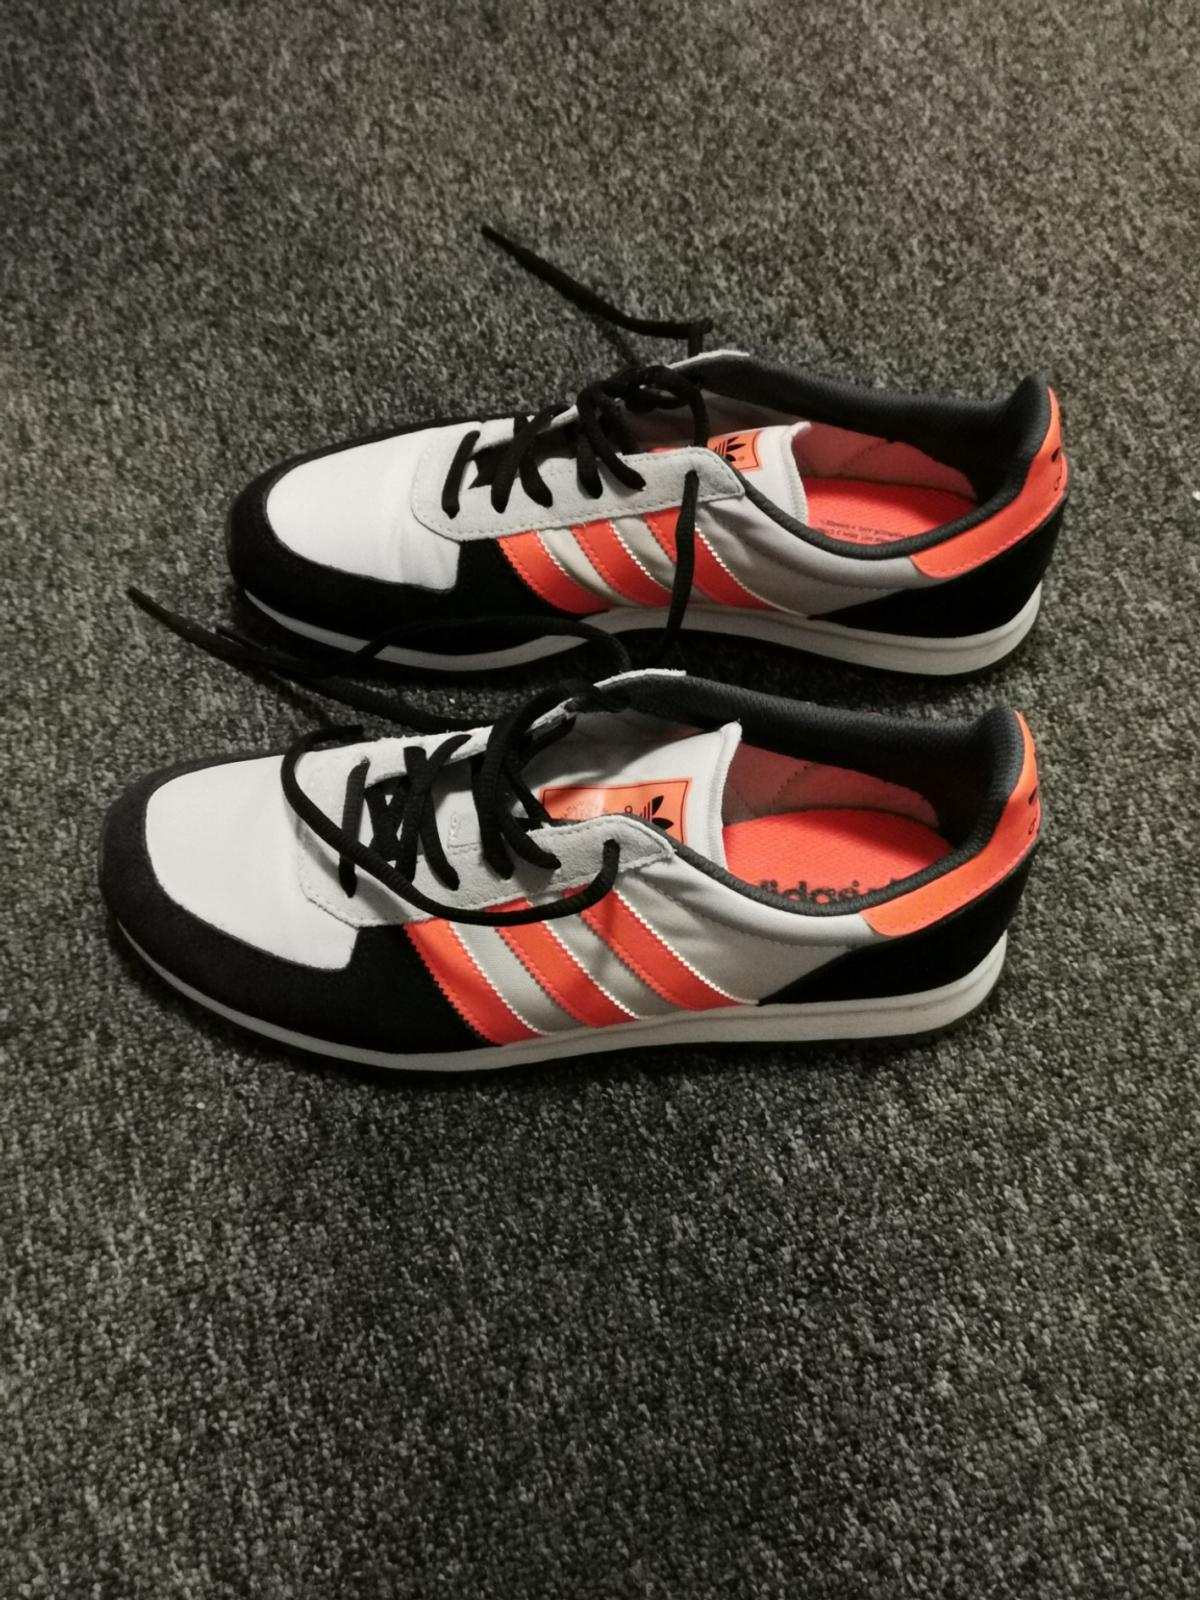 Adidas 22043 for sale in 00 adistar racer Jenfeld €50 for Rj45Lq3A